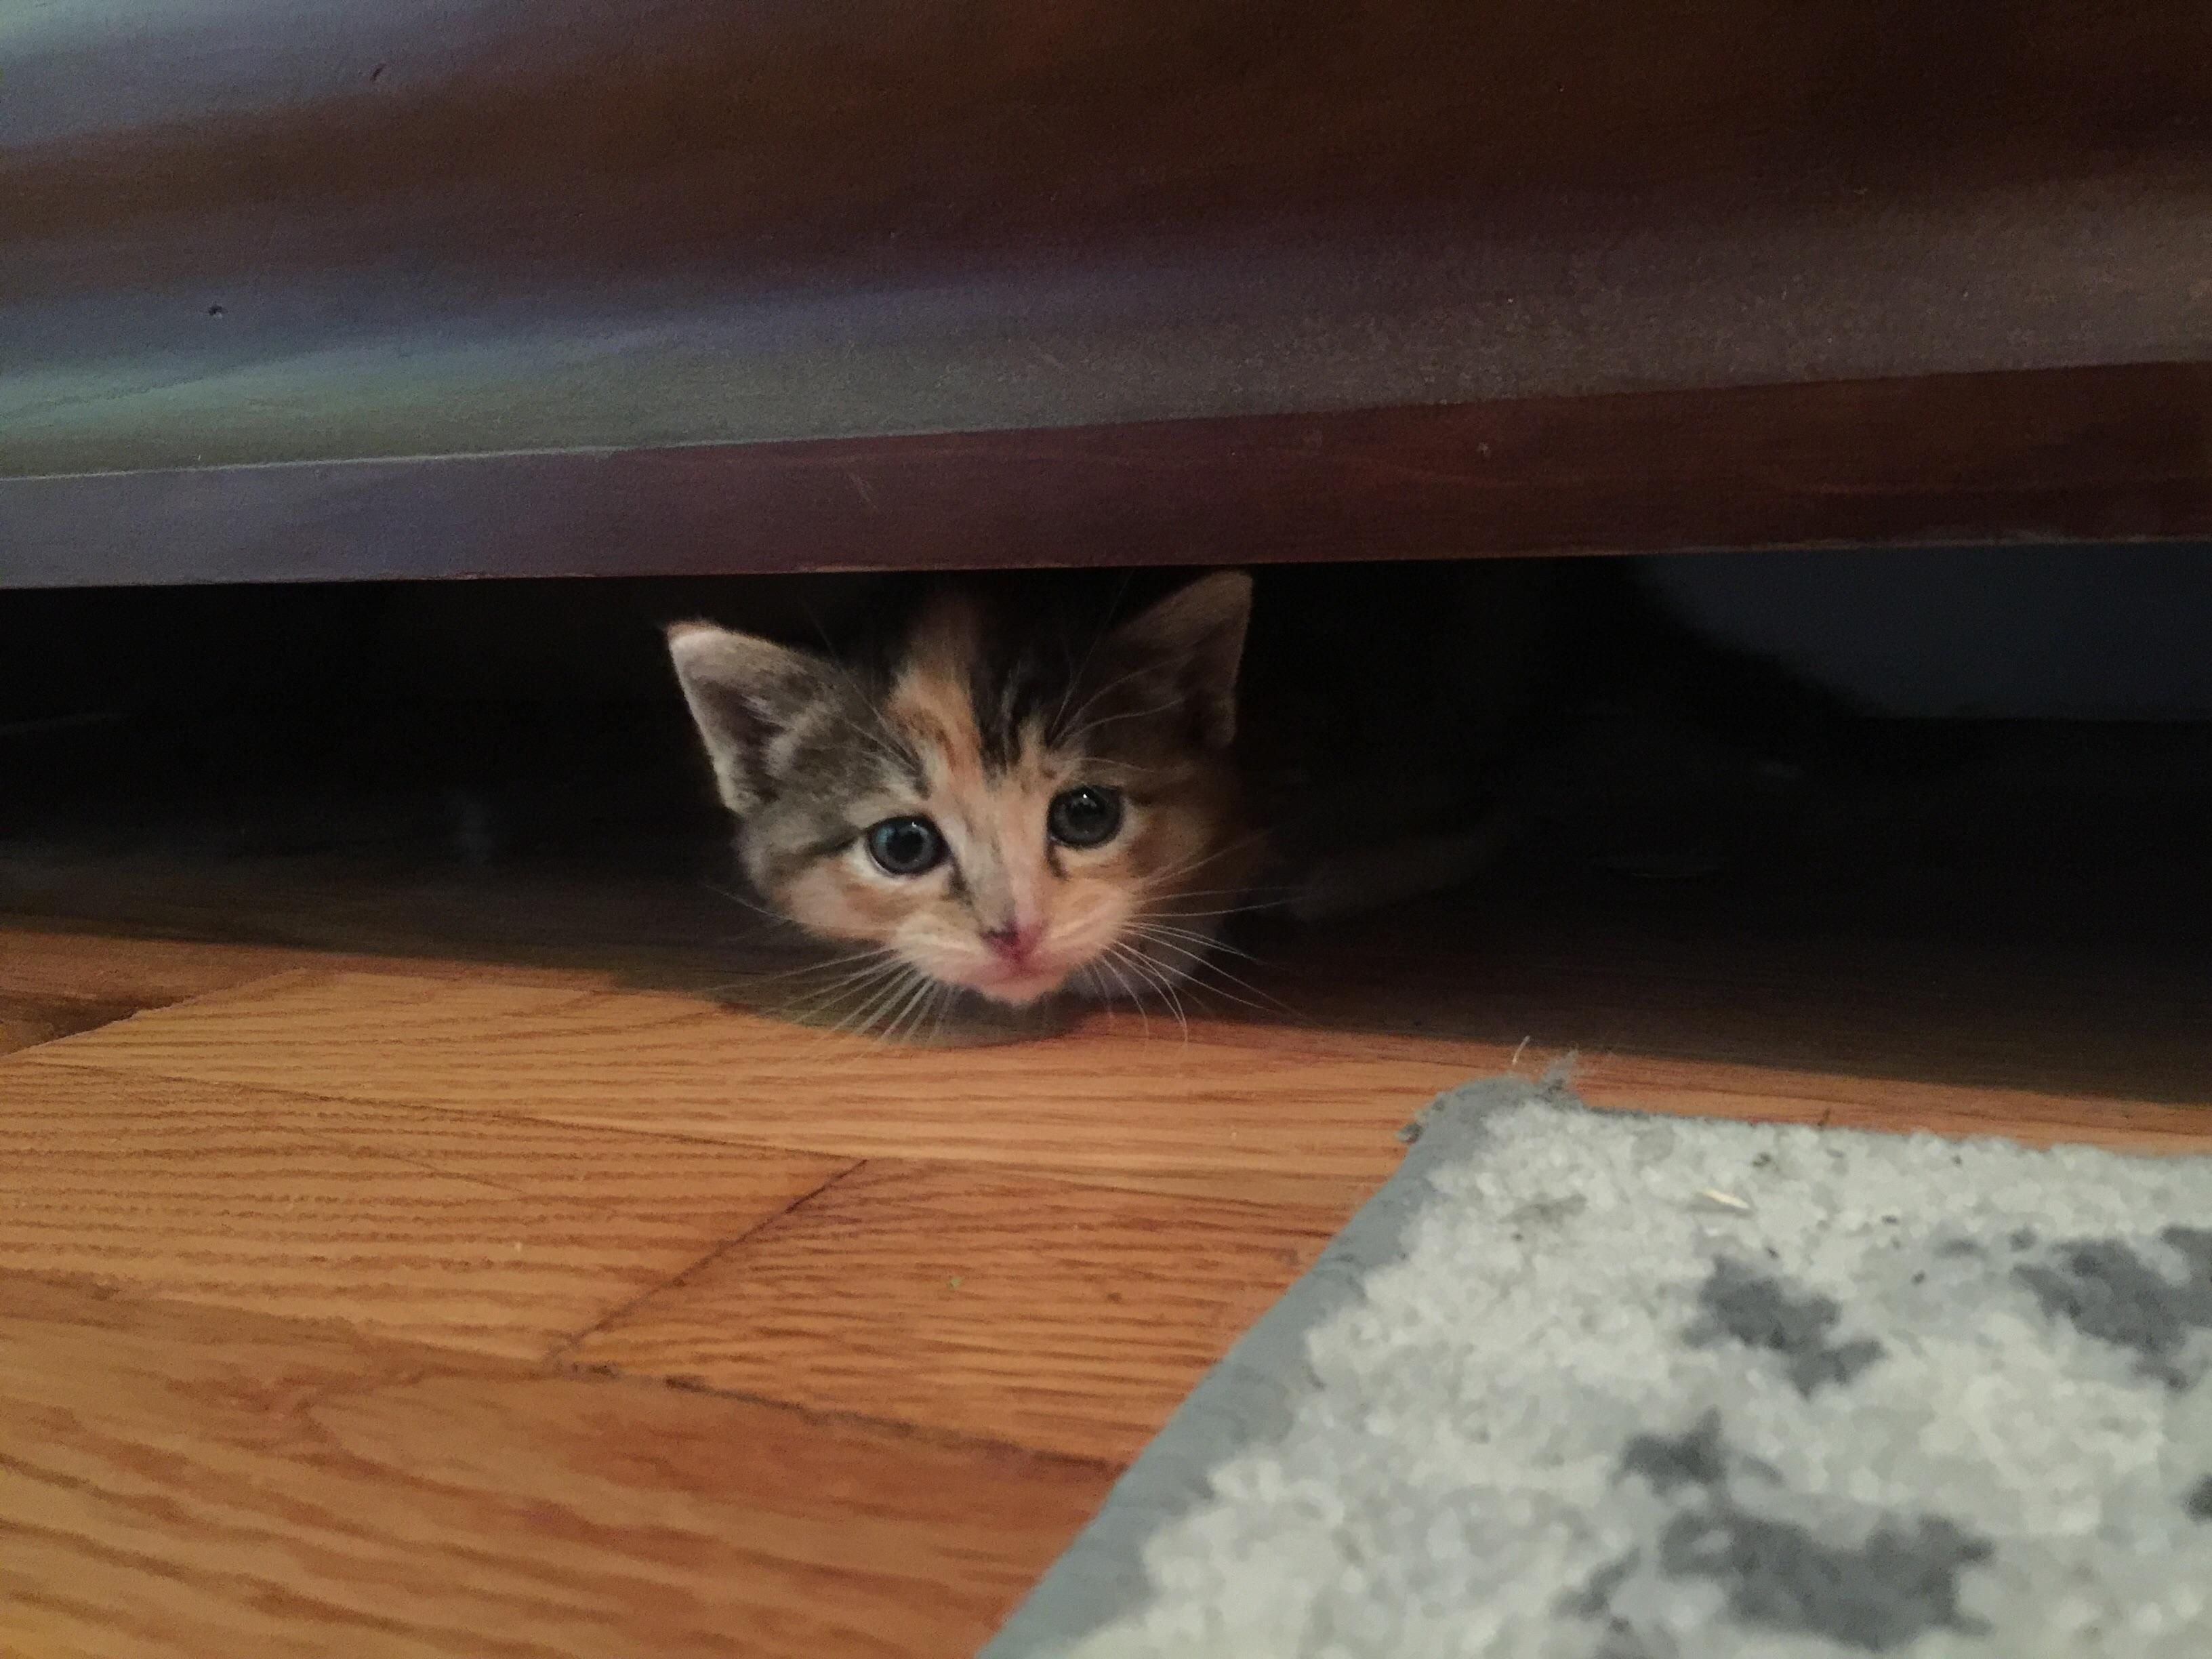 Peekaboo! Our kitty the day we rescued her hiding under